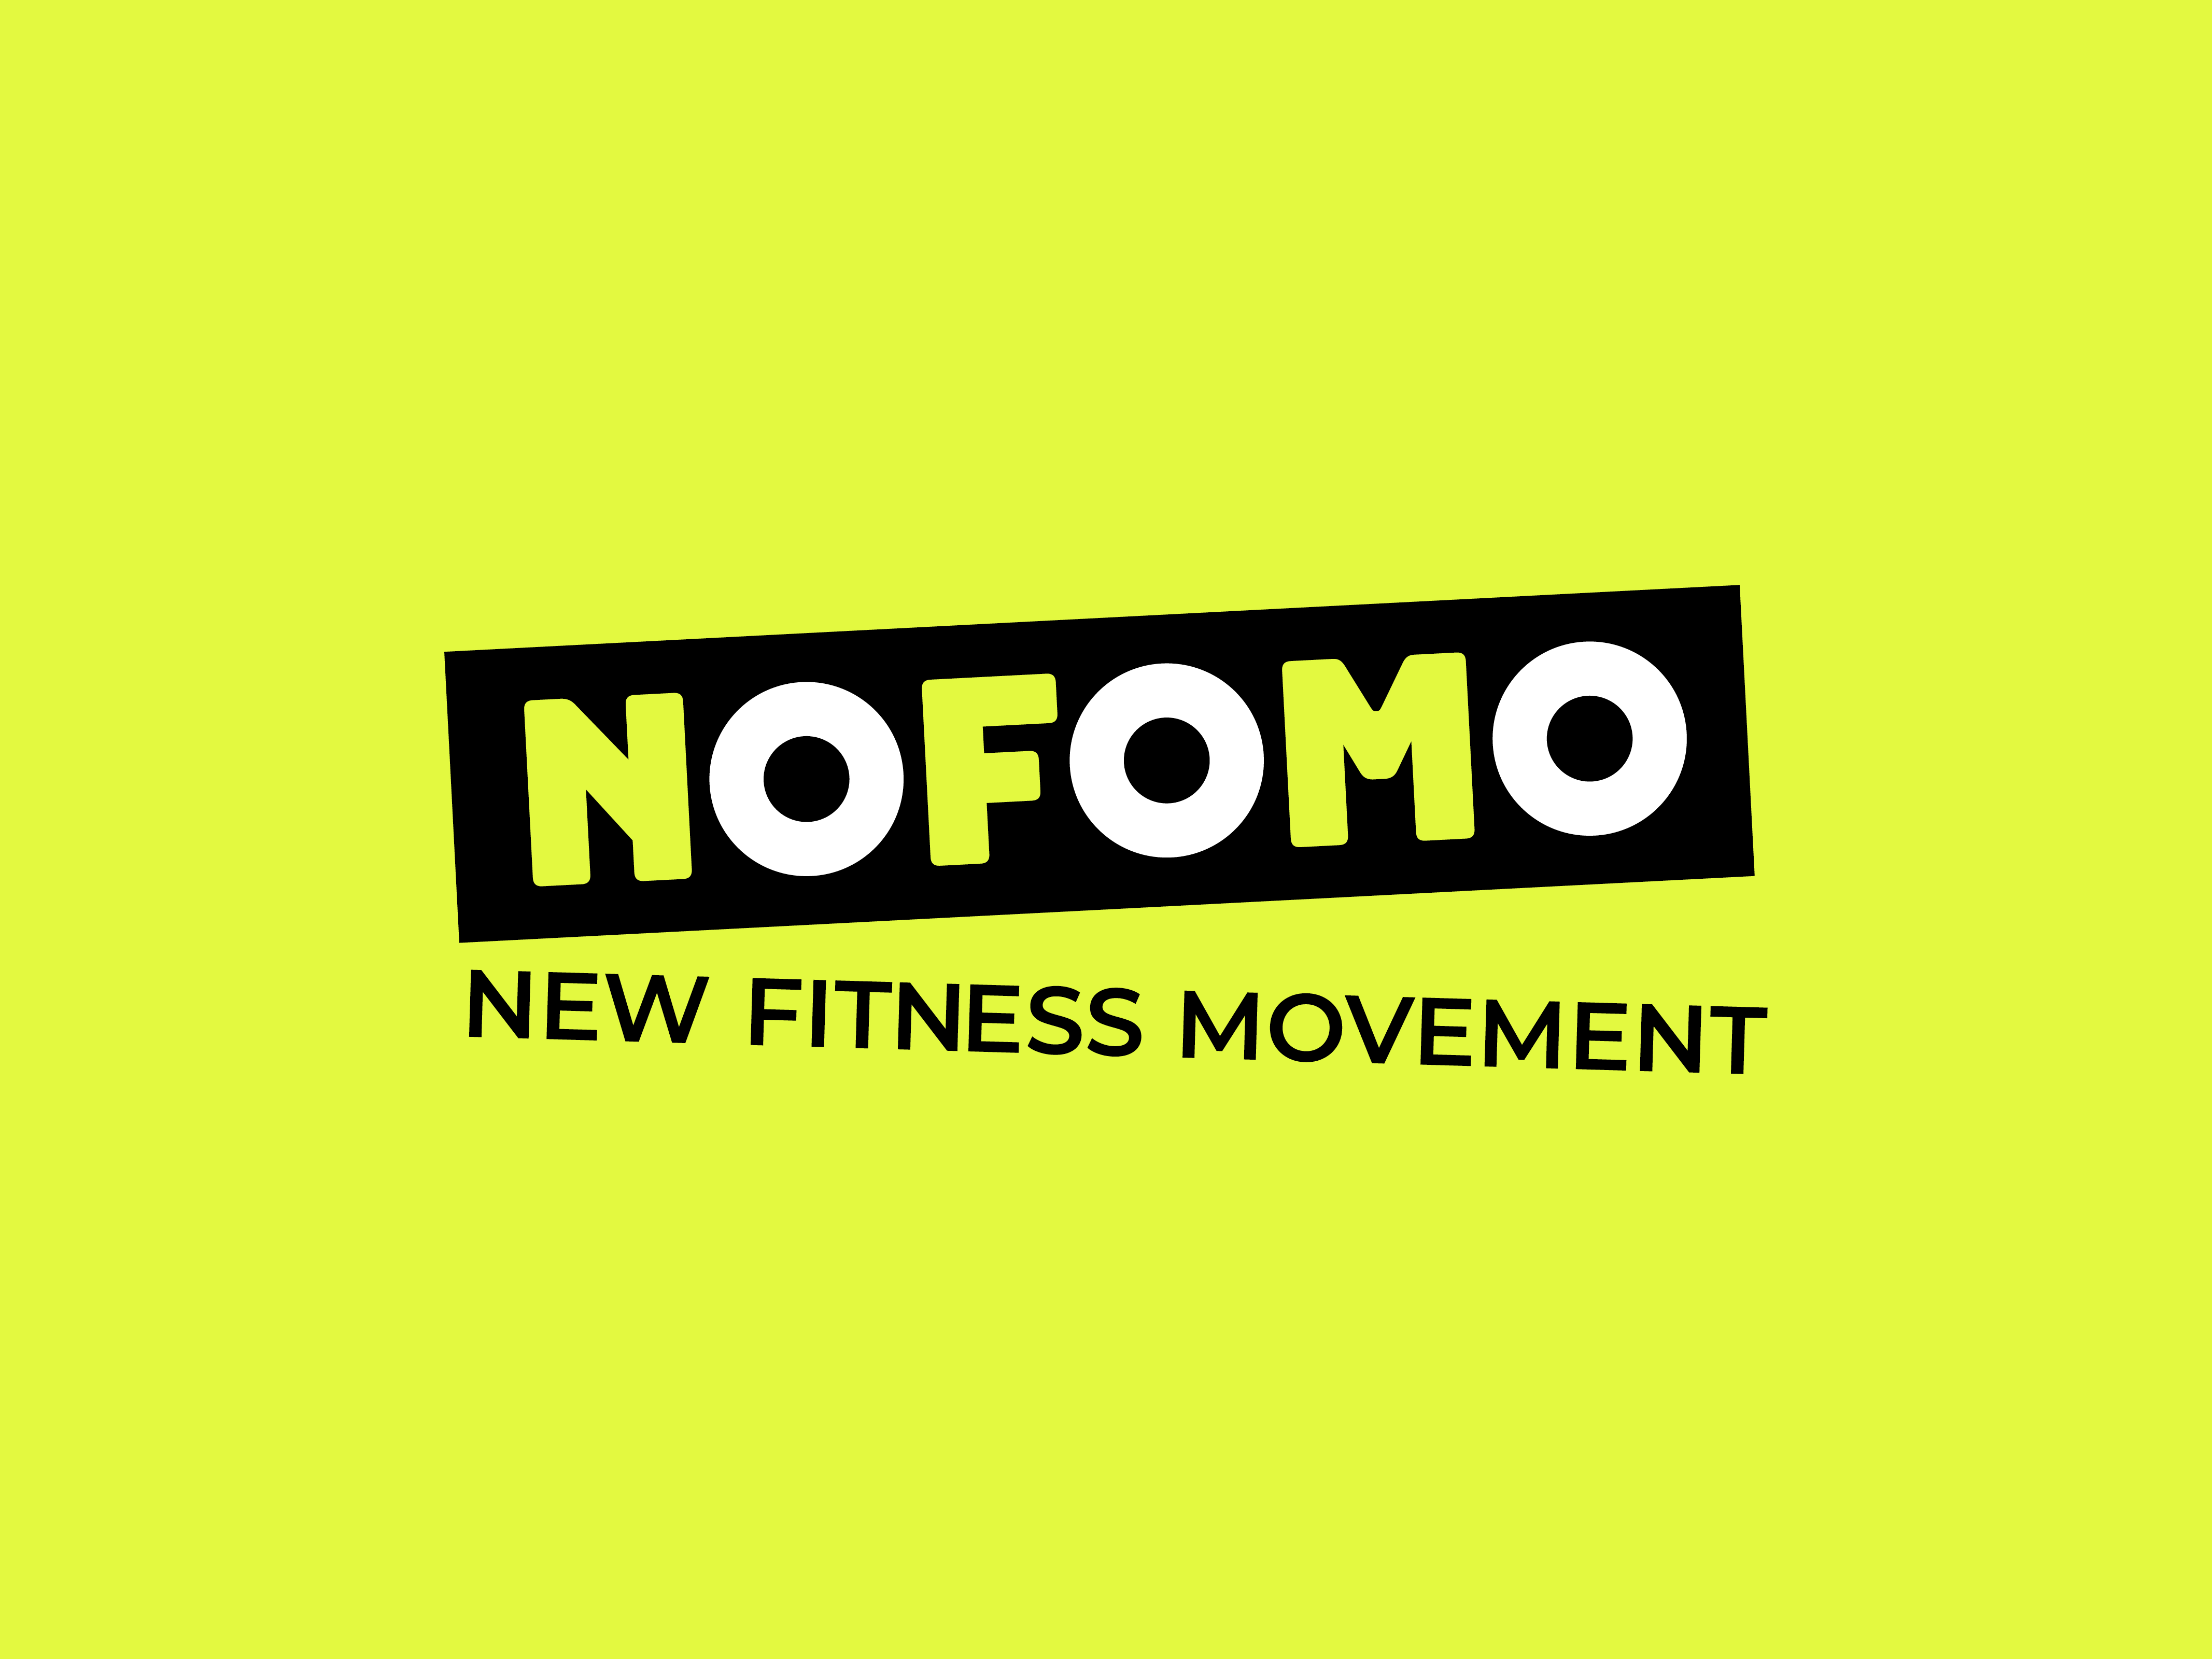 NOFOMO - New Fitness Movement logo